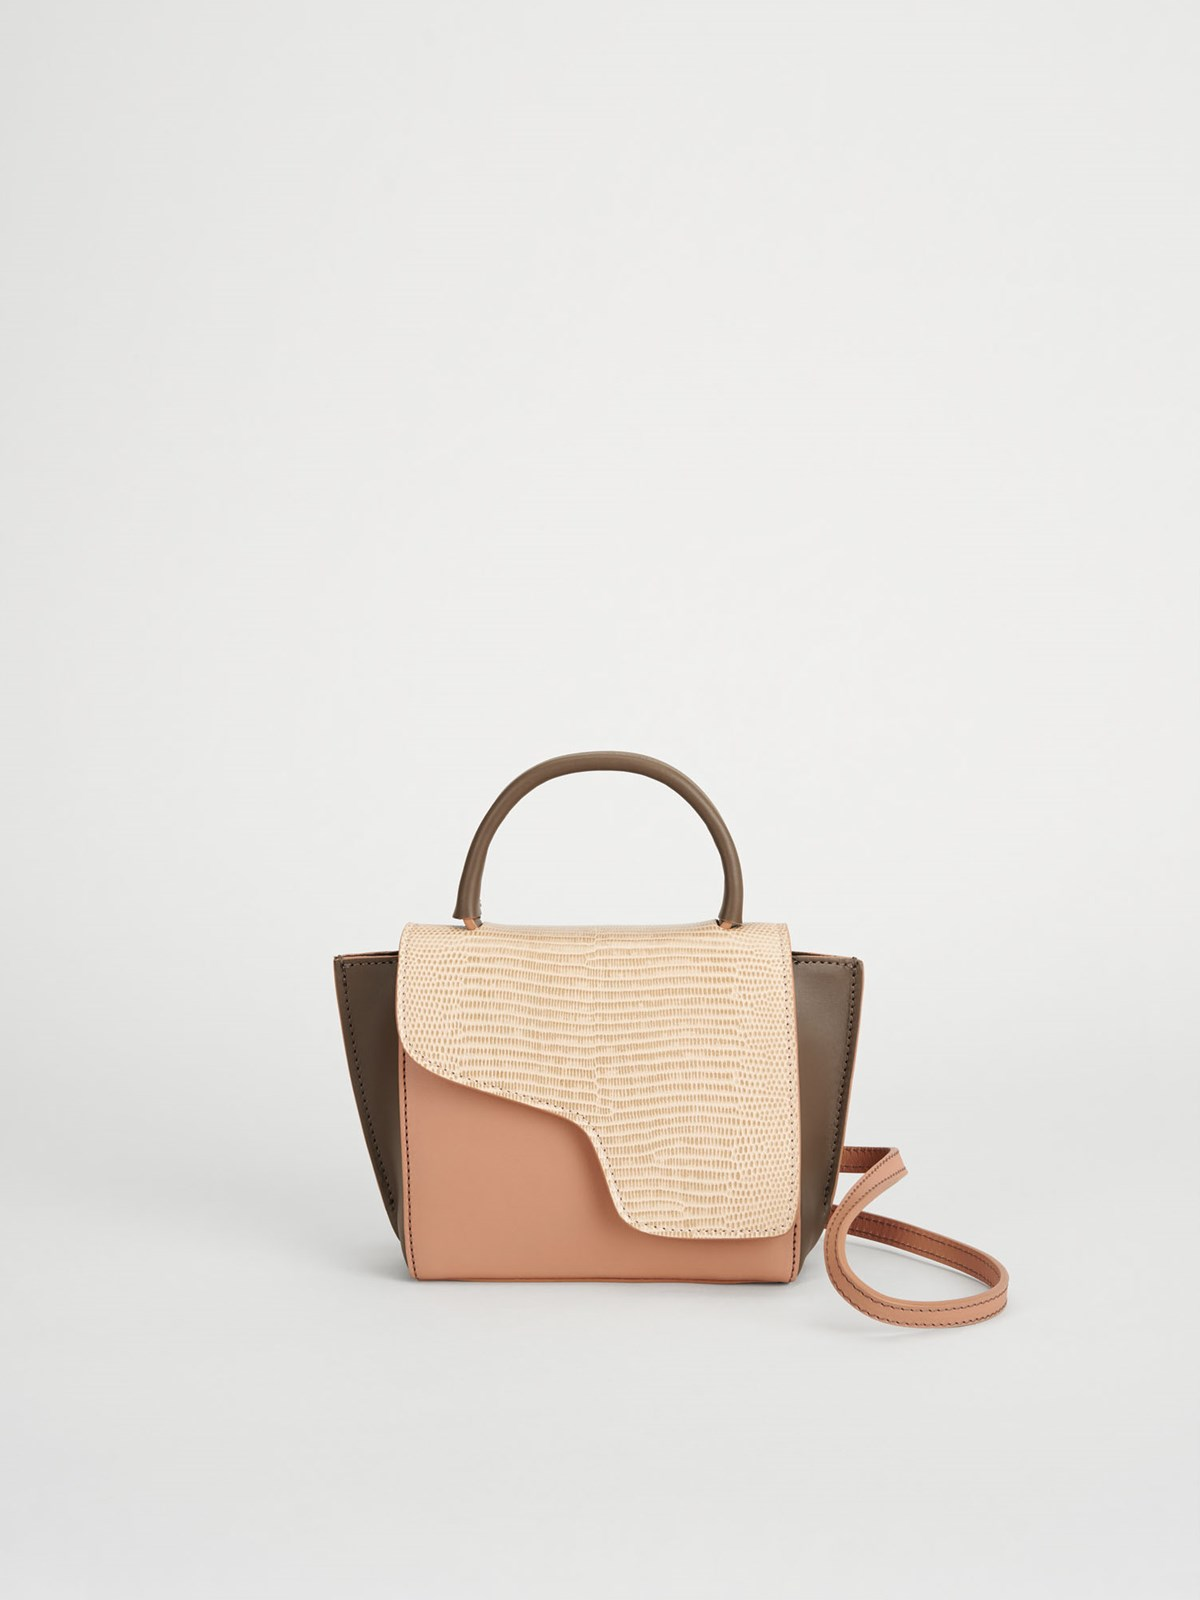 Montalcino Light Beige Mini handbag